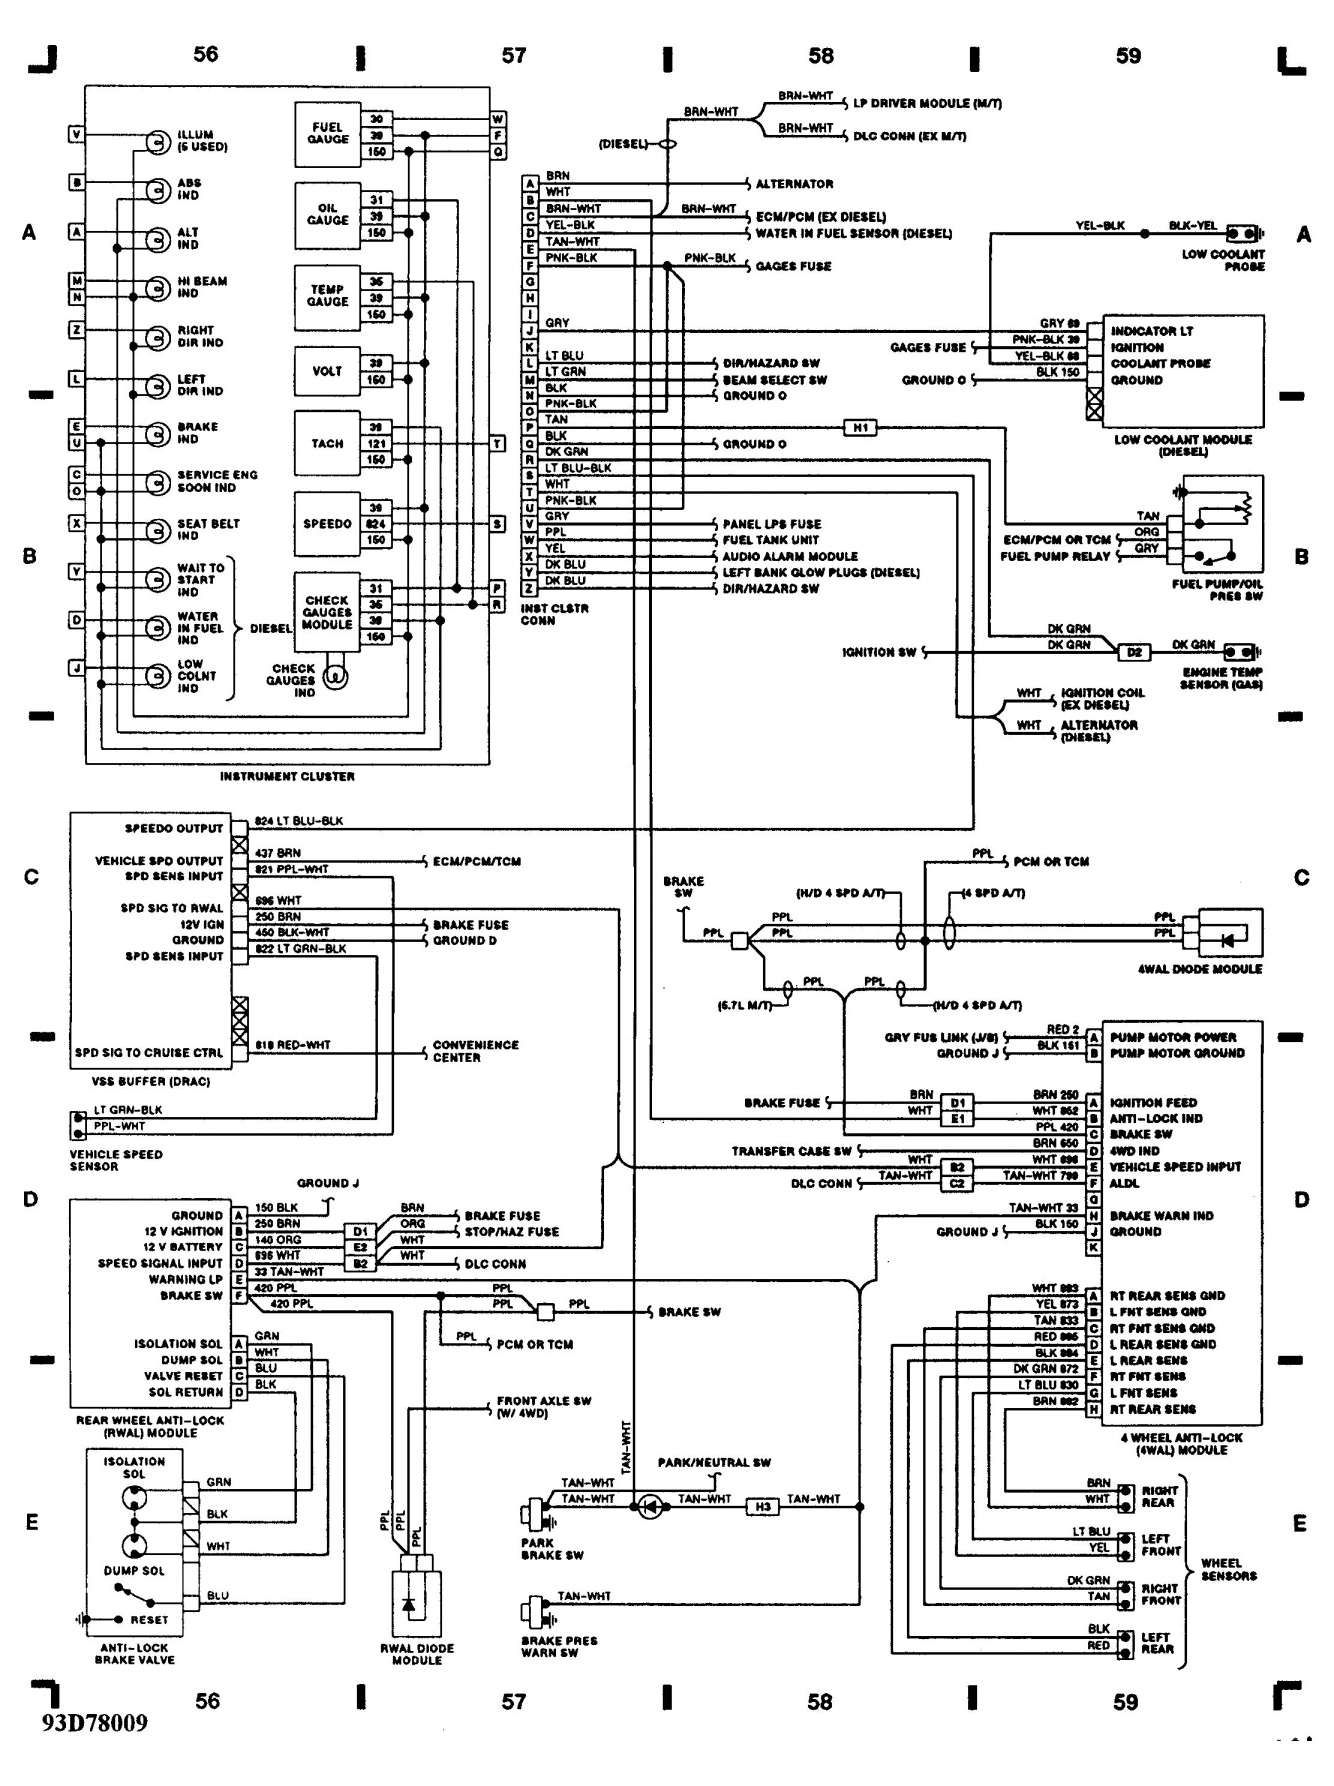 Chevy 305 Engine Wiring Diagram And Engine Wiring Harness Diagram Getting Started Of Chevy S10 87 Chevy Truck Toyota Corolla